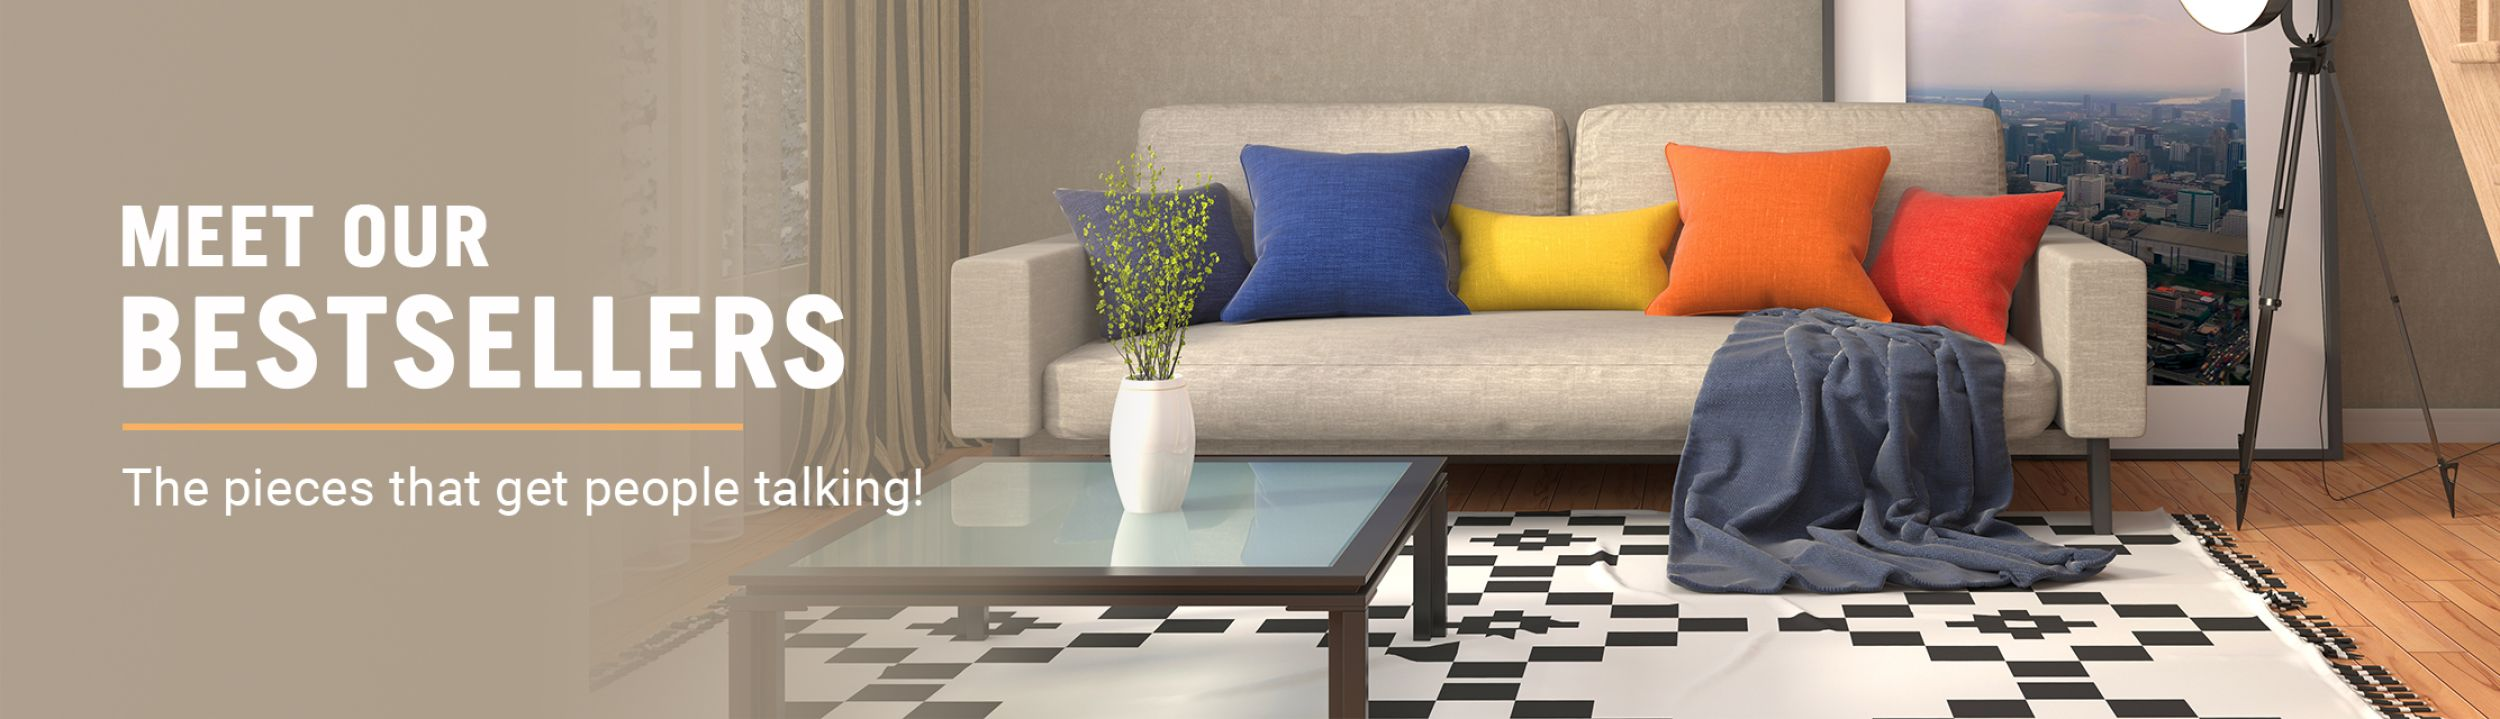 bs bs. Furniture   Buy Furniture at Best Prices Online at Flipkart com